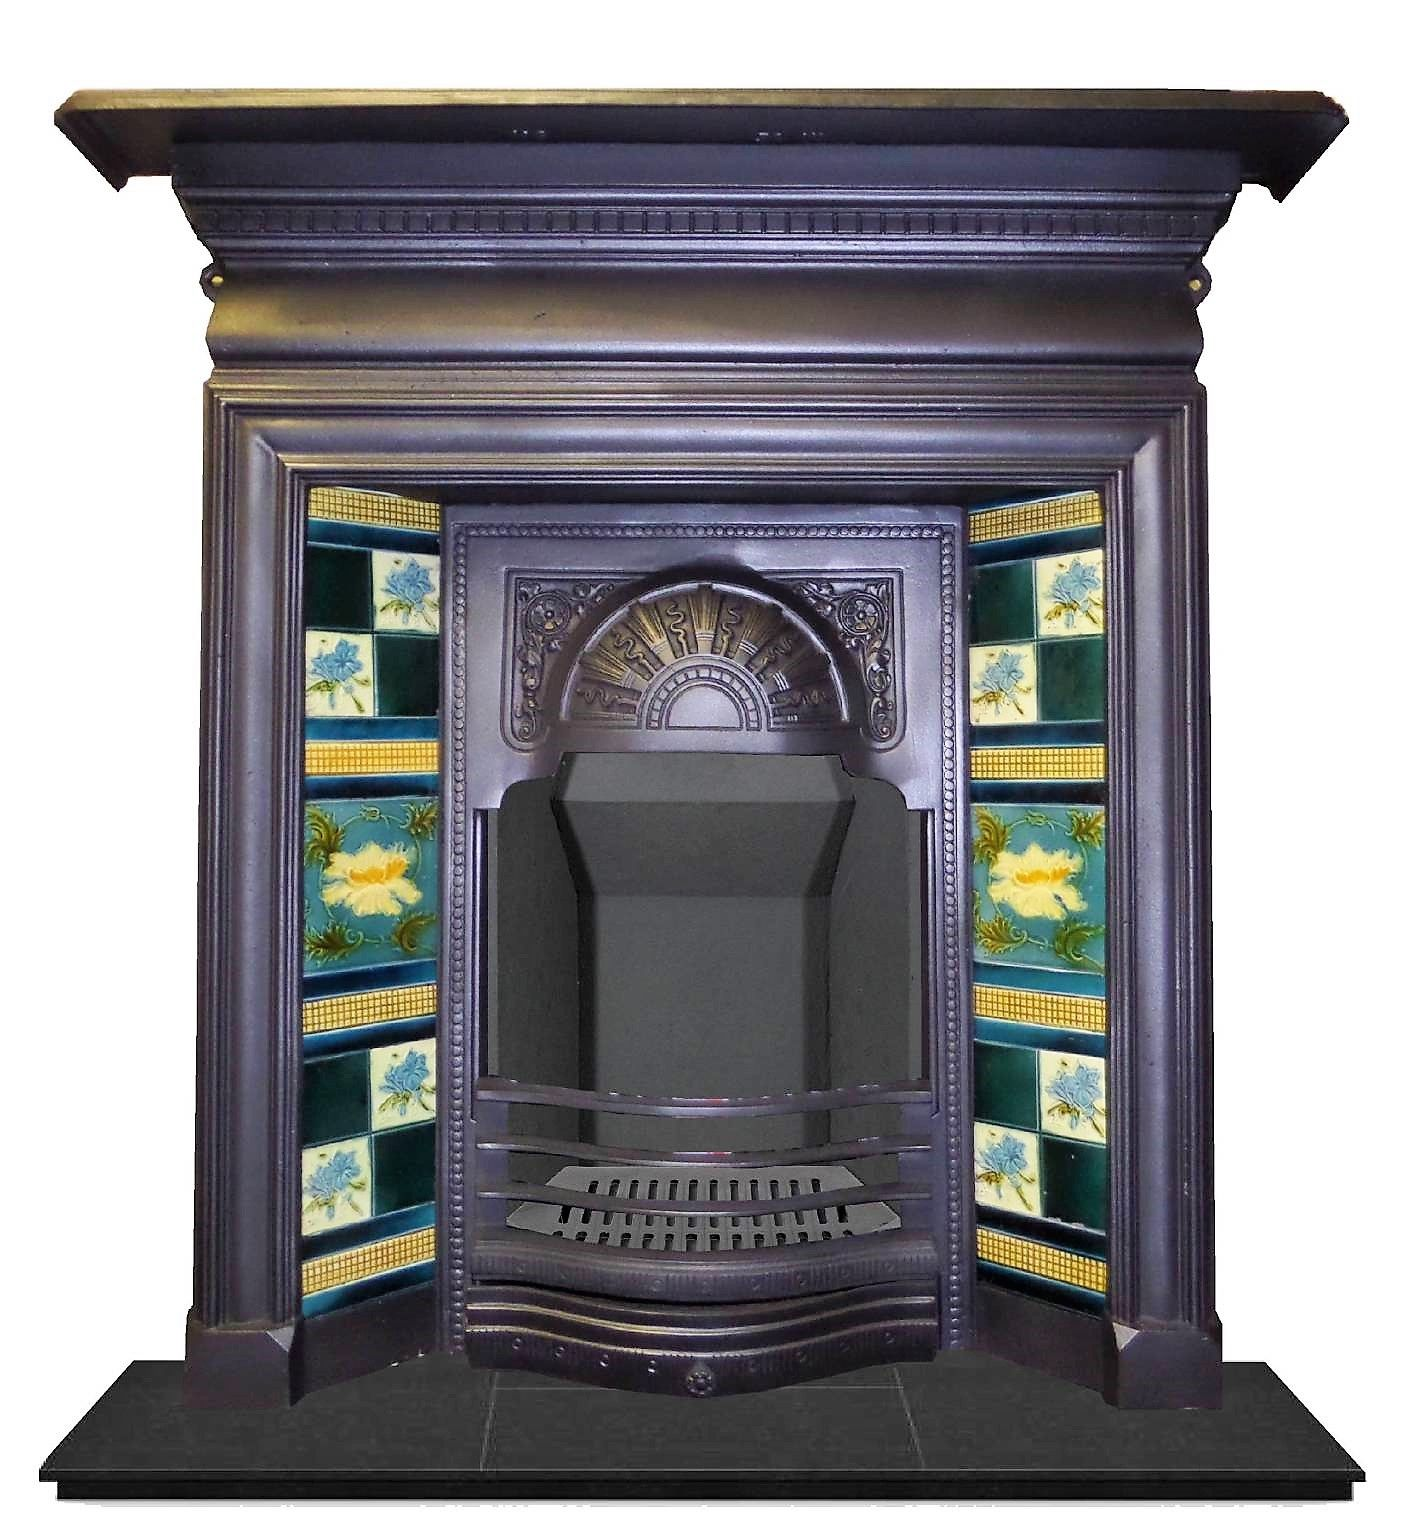 surround antique tiles and with landscapes dutch delft manganese fireplace a century scenes in landscape wall circle